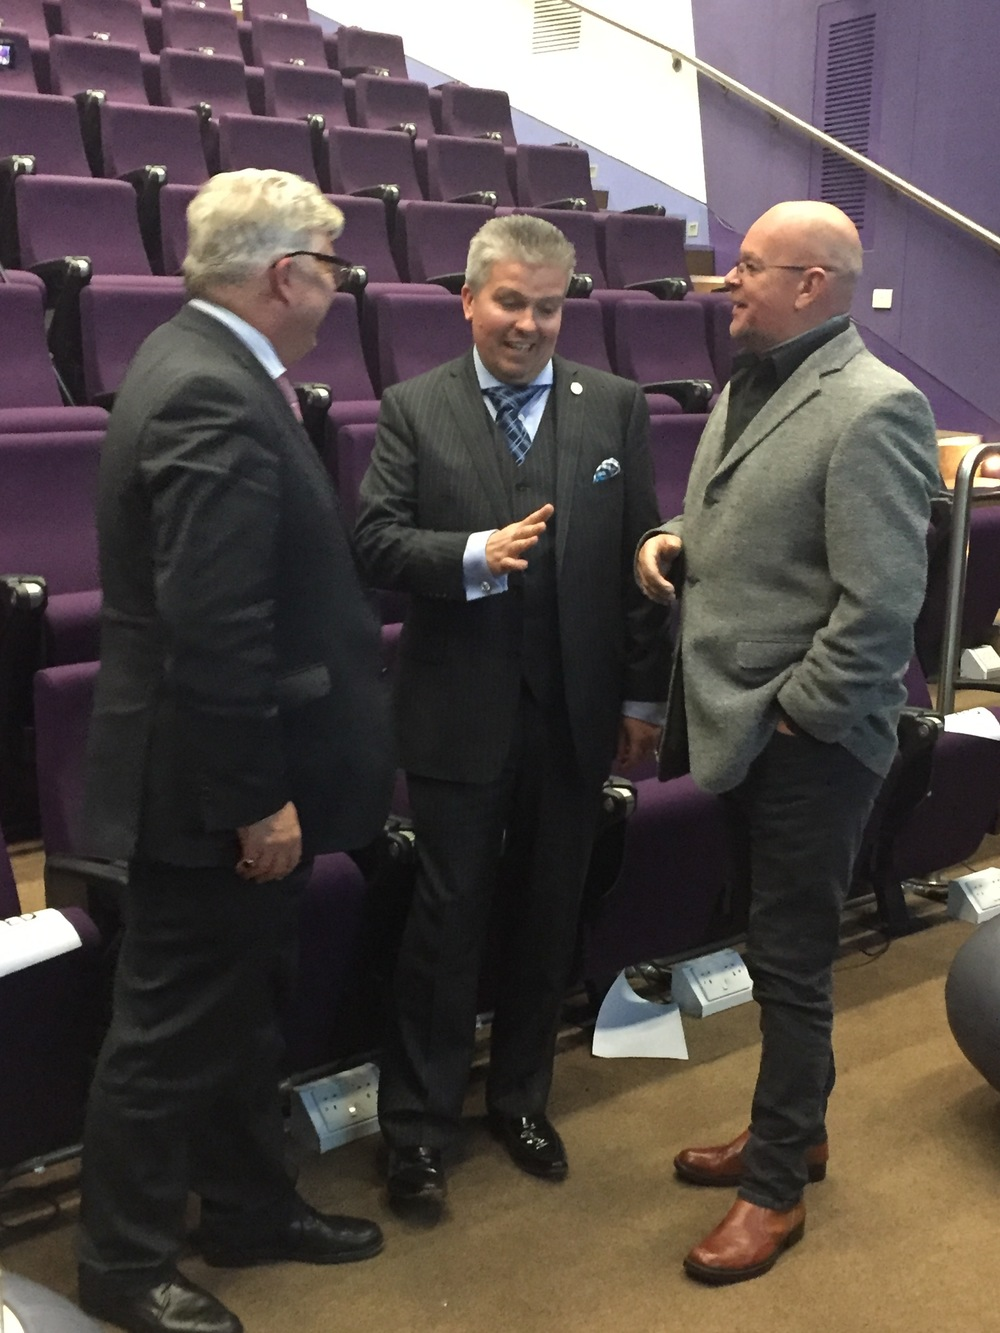 From left: Cllr Kevin Bentley, David Bell and James Whale